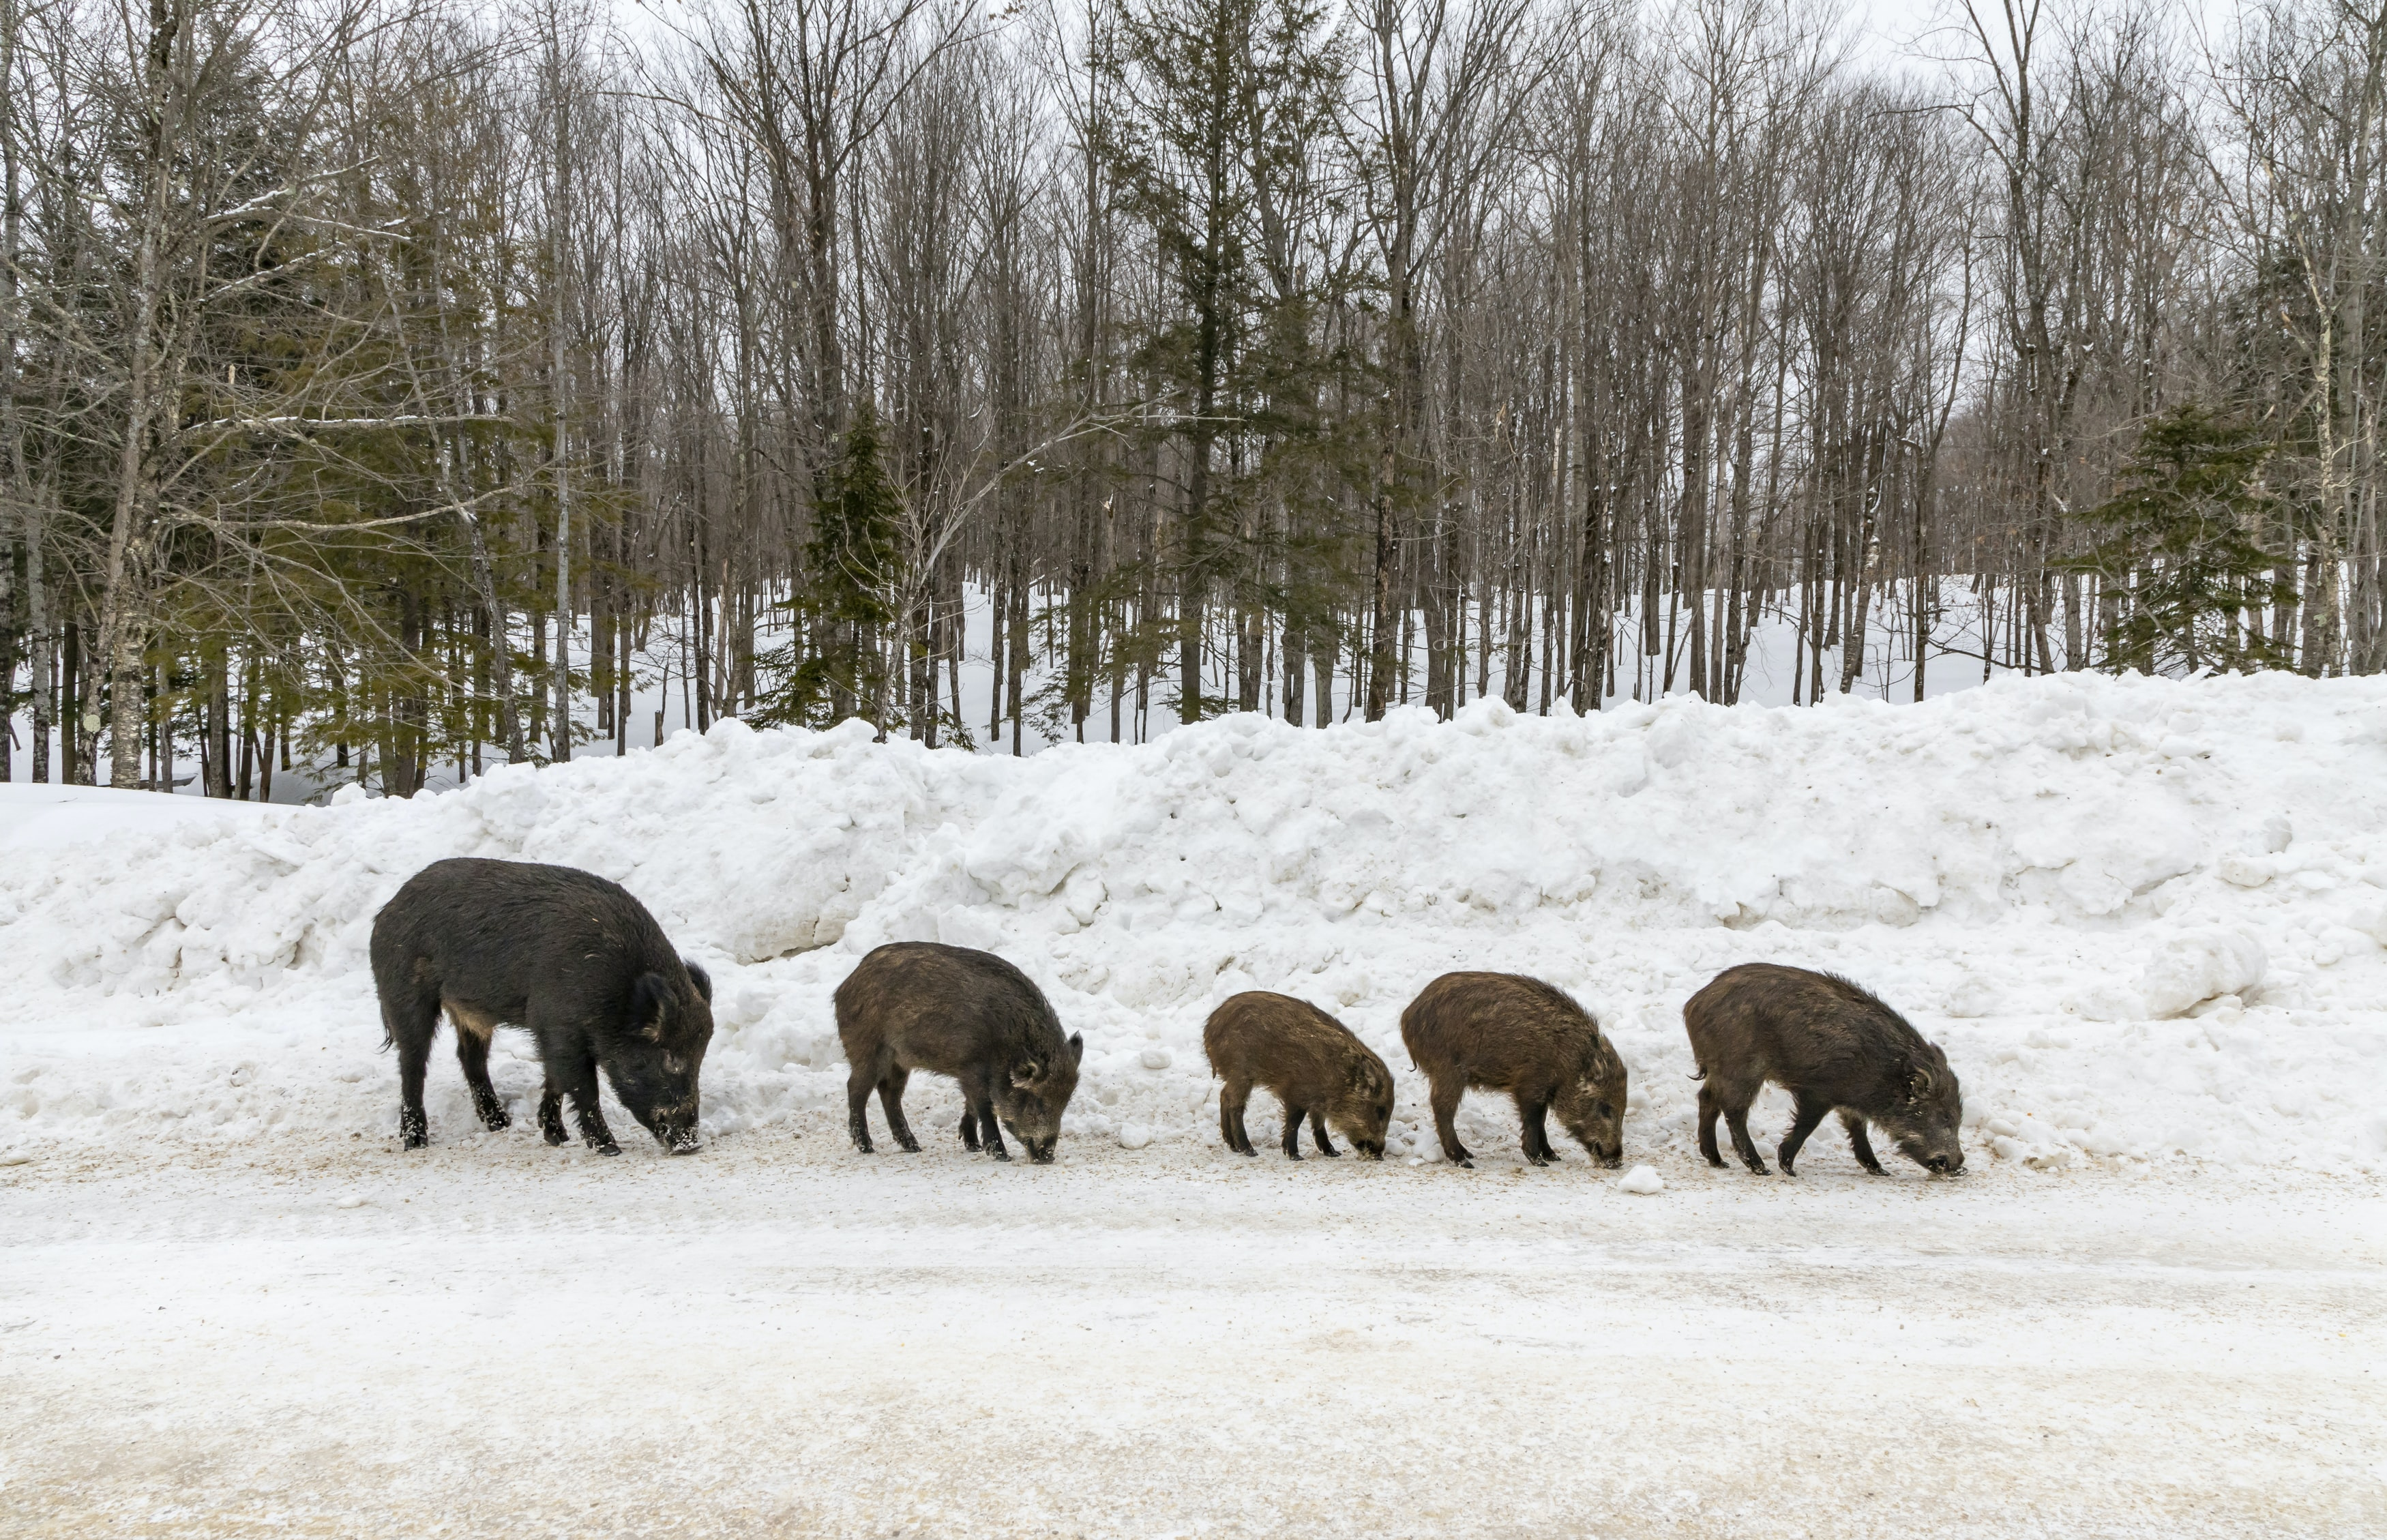 five brown and black animals on snow field during daytime